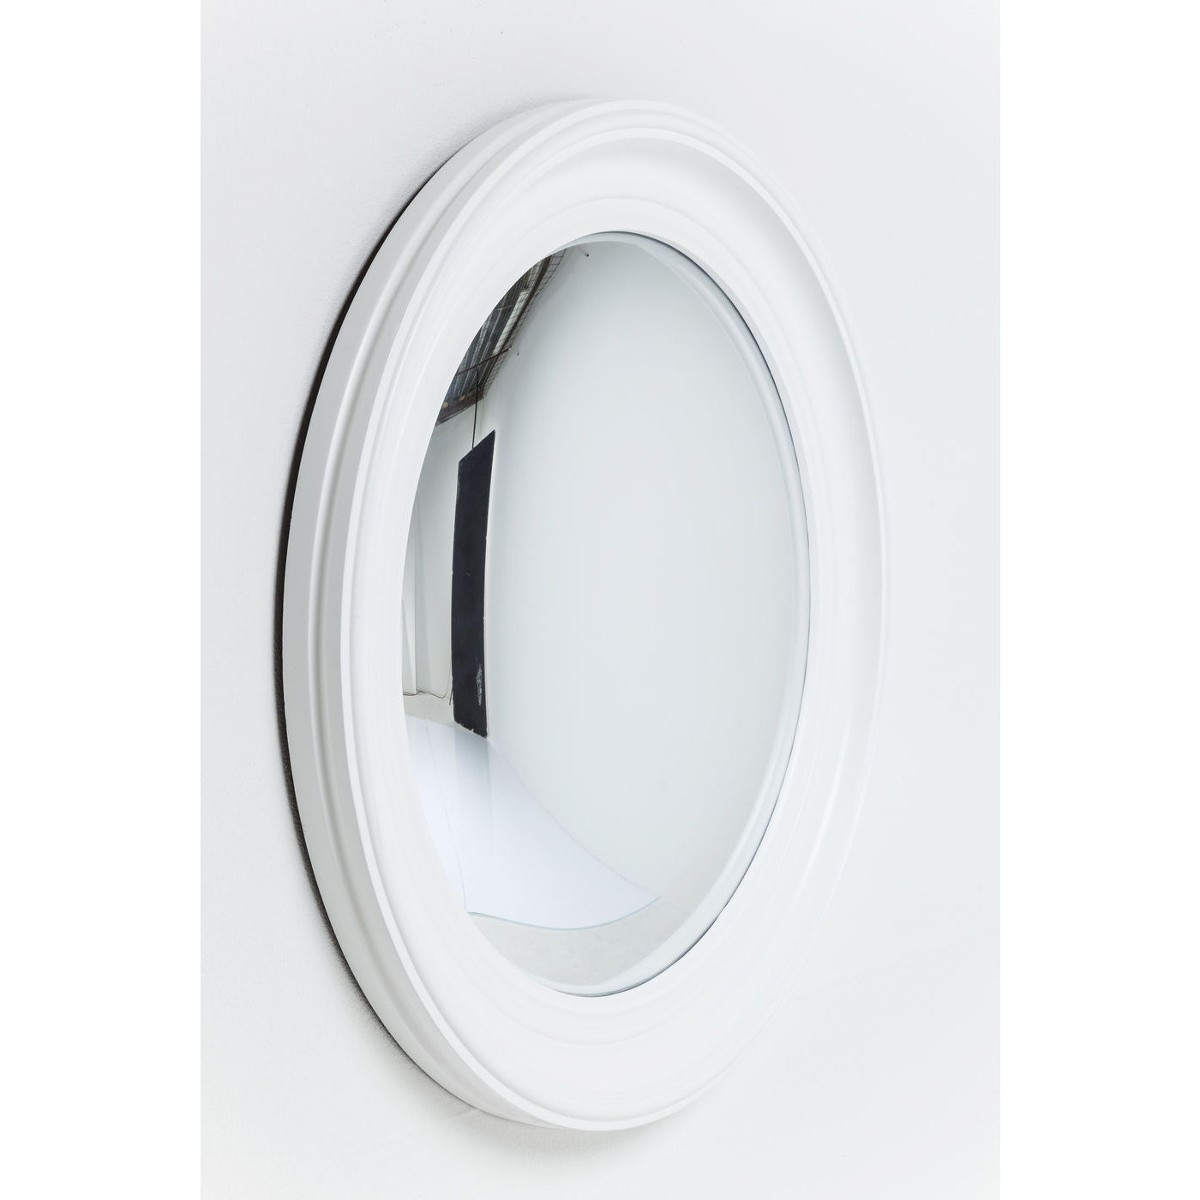 White Convex Mirror Mirrors Accessories Caseys Furniture Inside White Convex Mirror (View 10 of 15)